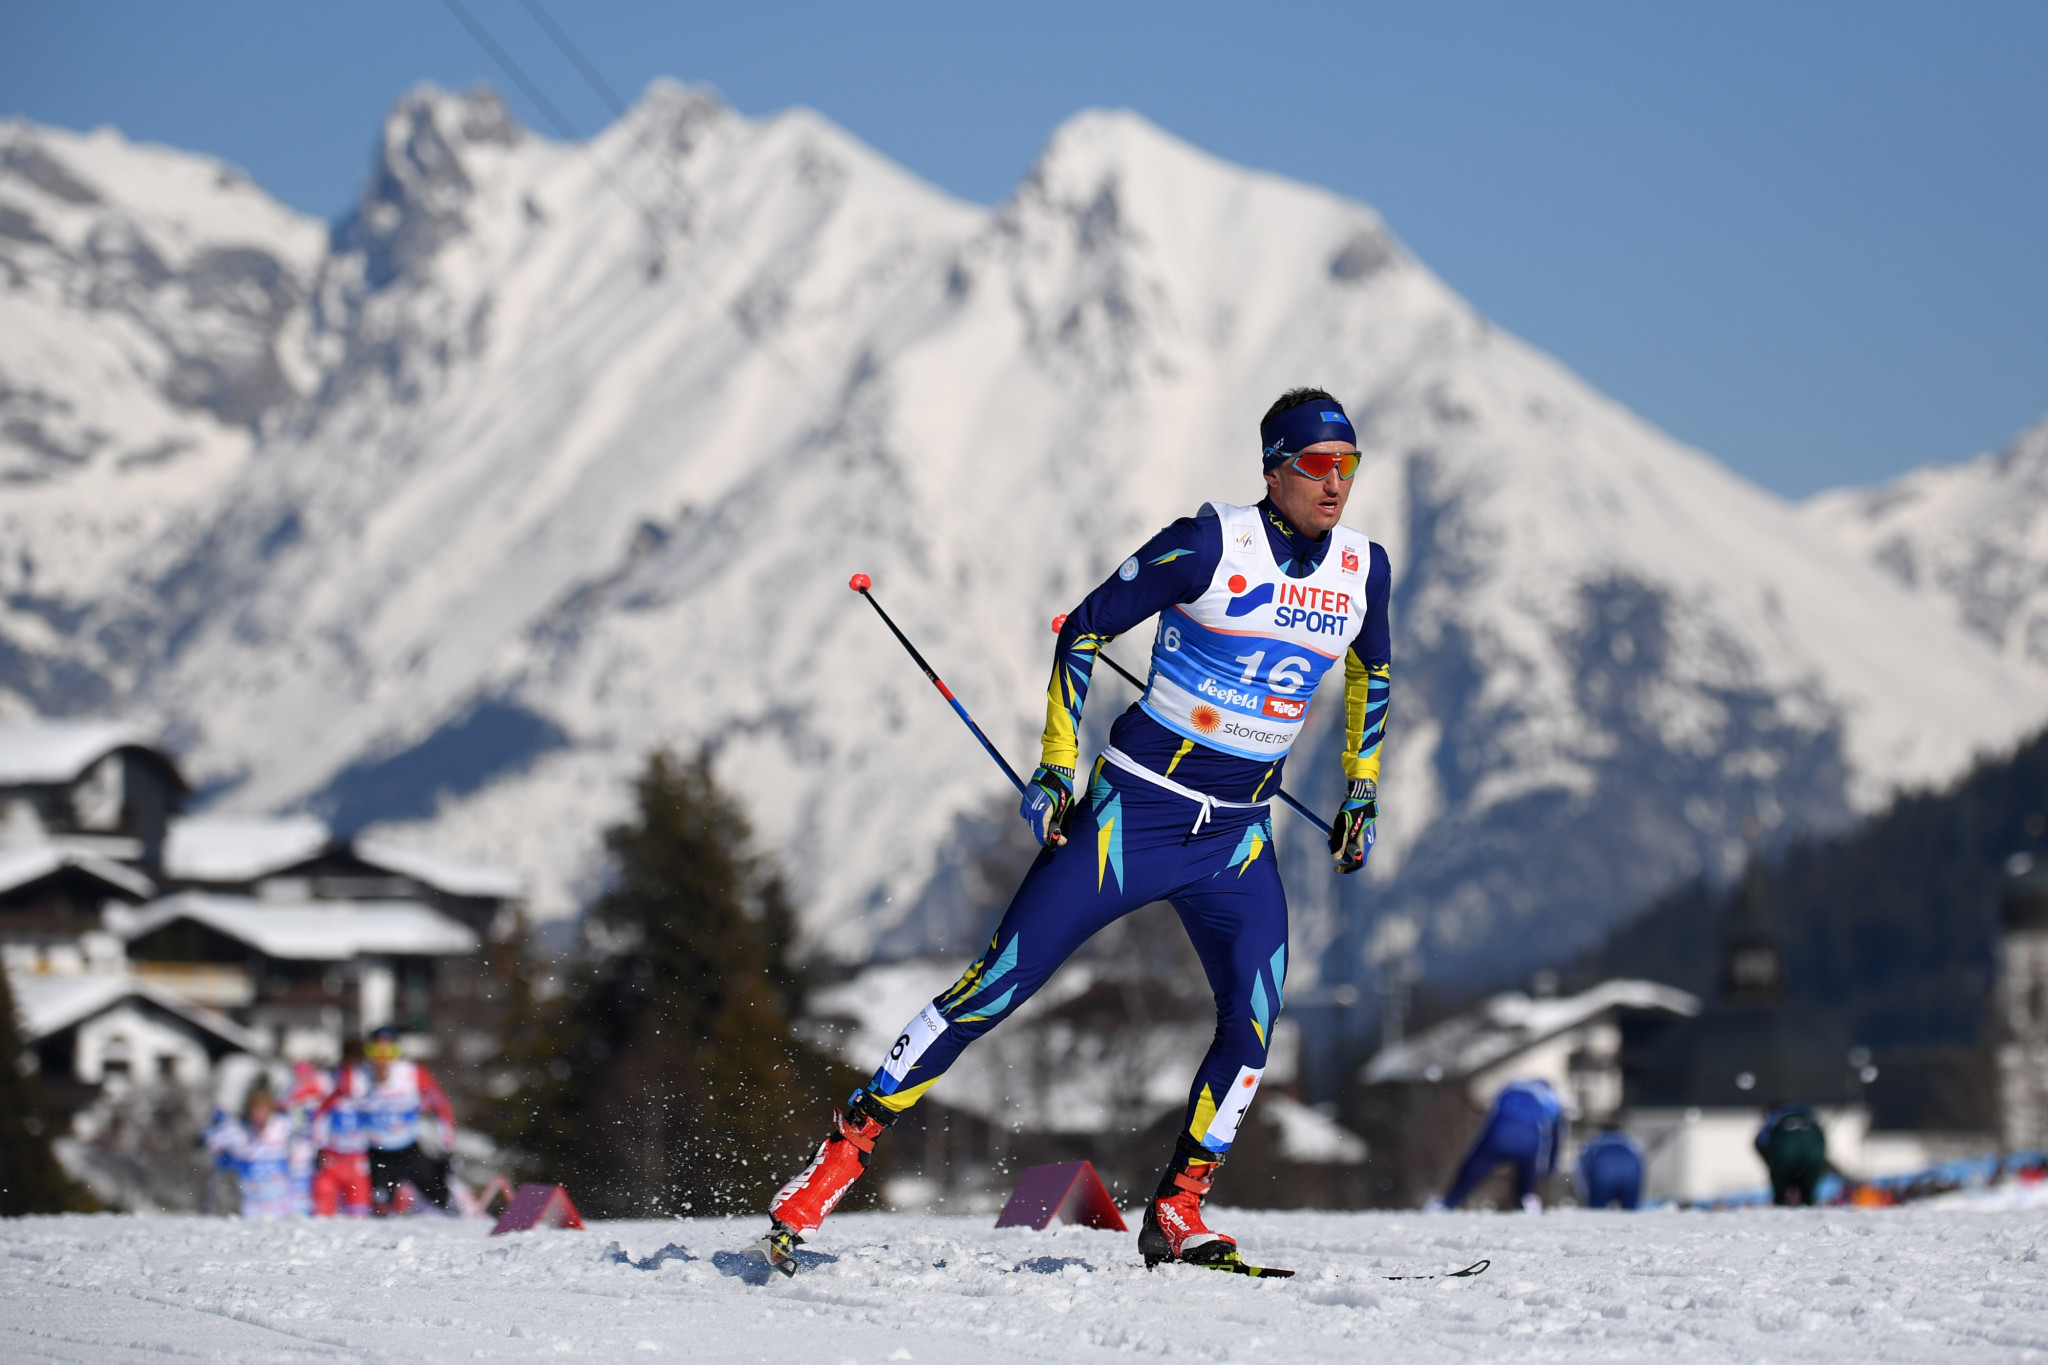 FIS ban three athletes and coach for role in blood doping scandal